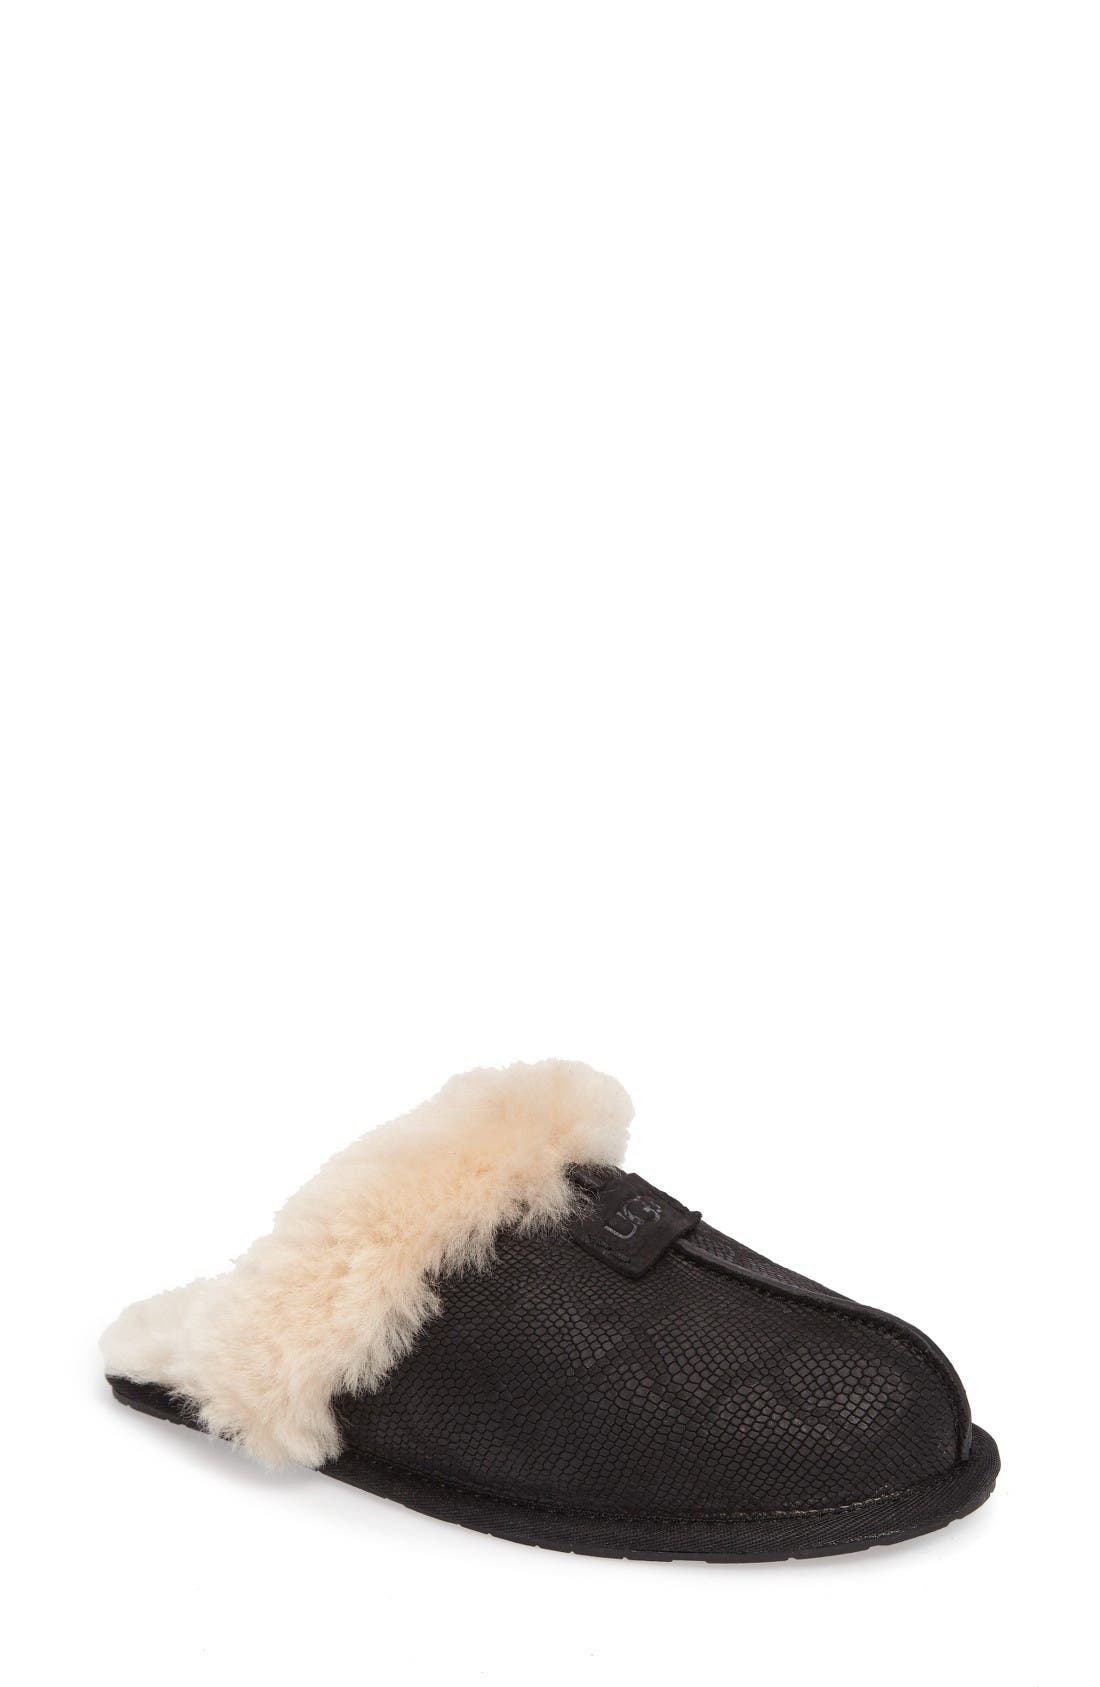 Alternate Image 1 Selected - UGG® Scuffette II Snake Embossed Slipper (Women)